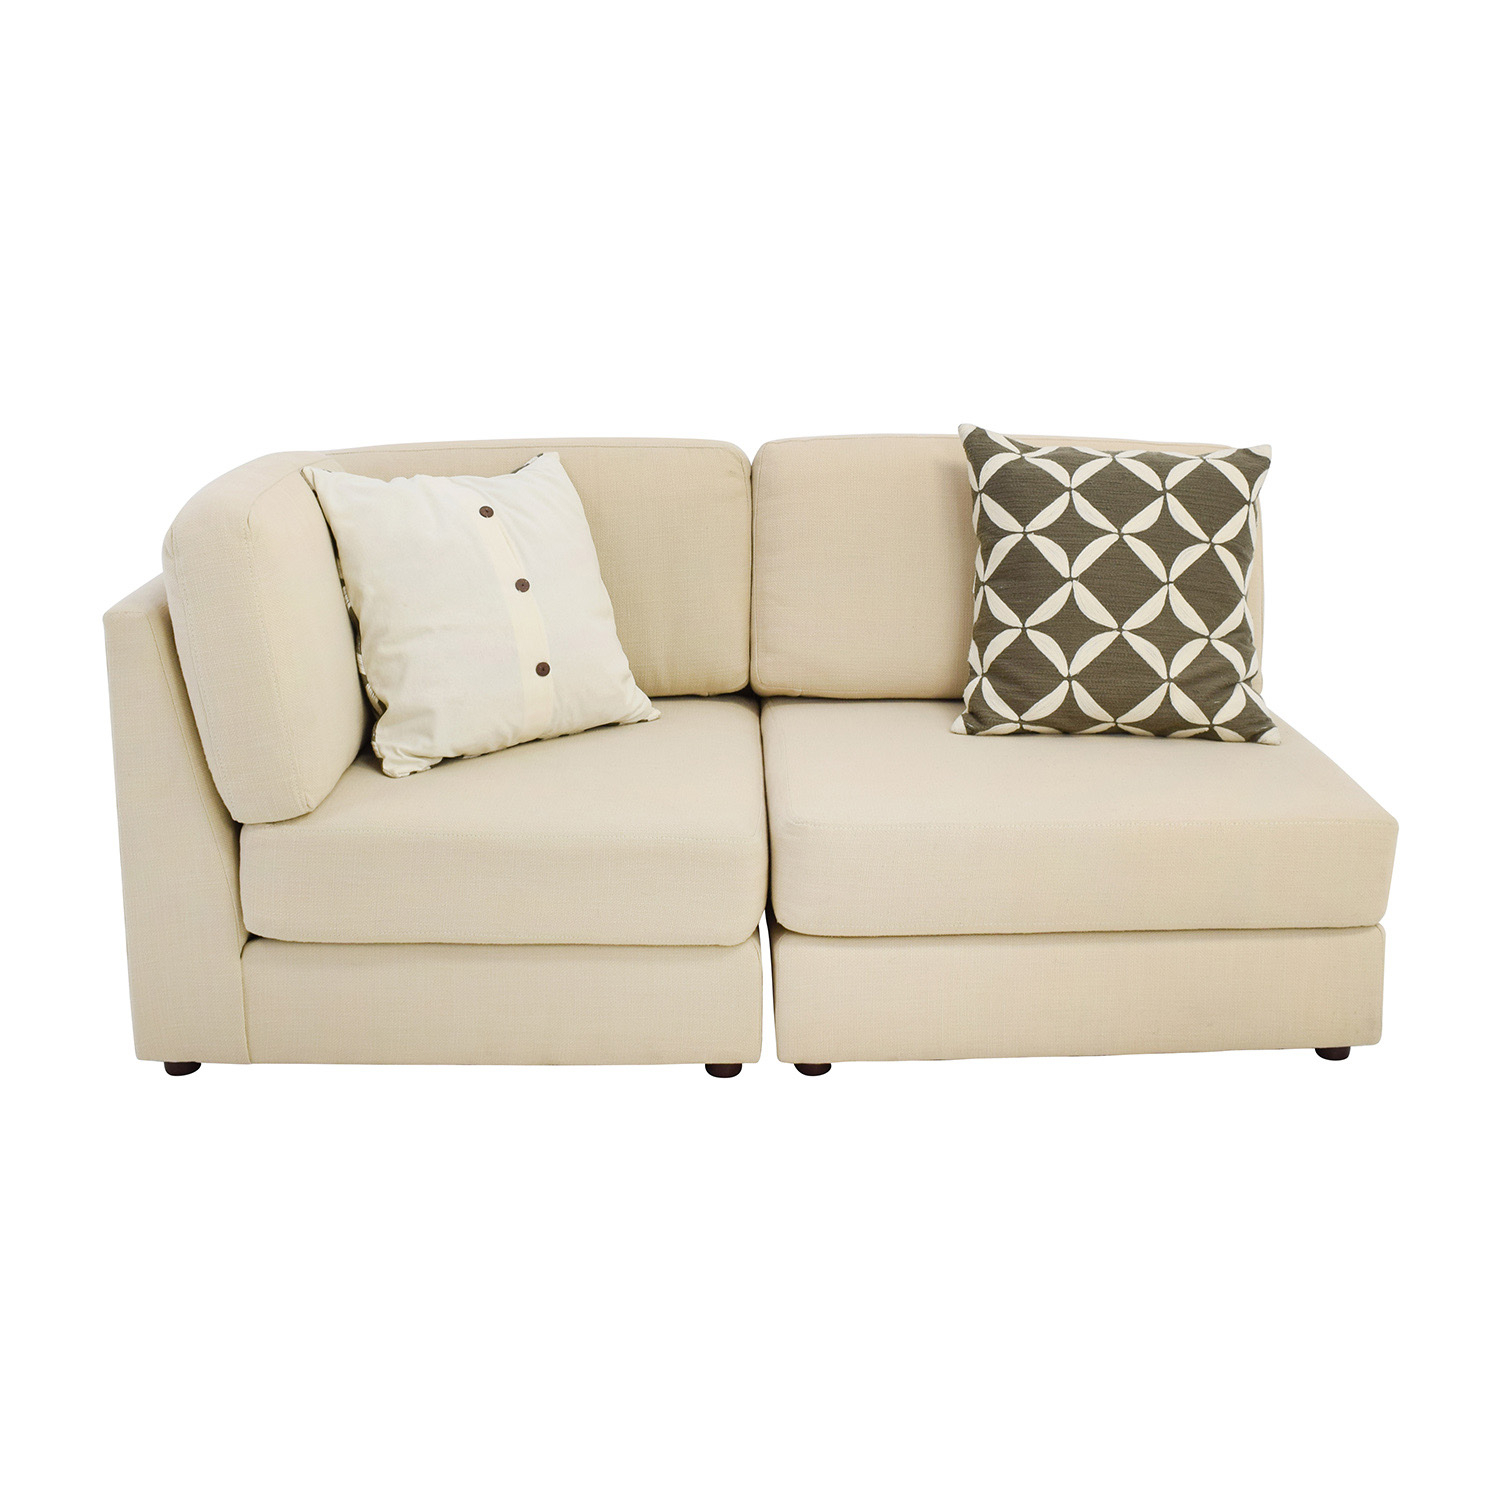 76% Off - West Elm West Elm Cream Chaise Sofa Or Two Chairs / Sofas with regard to Elm Sofa Chairs